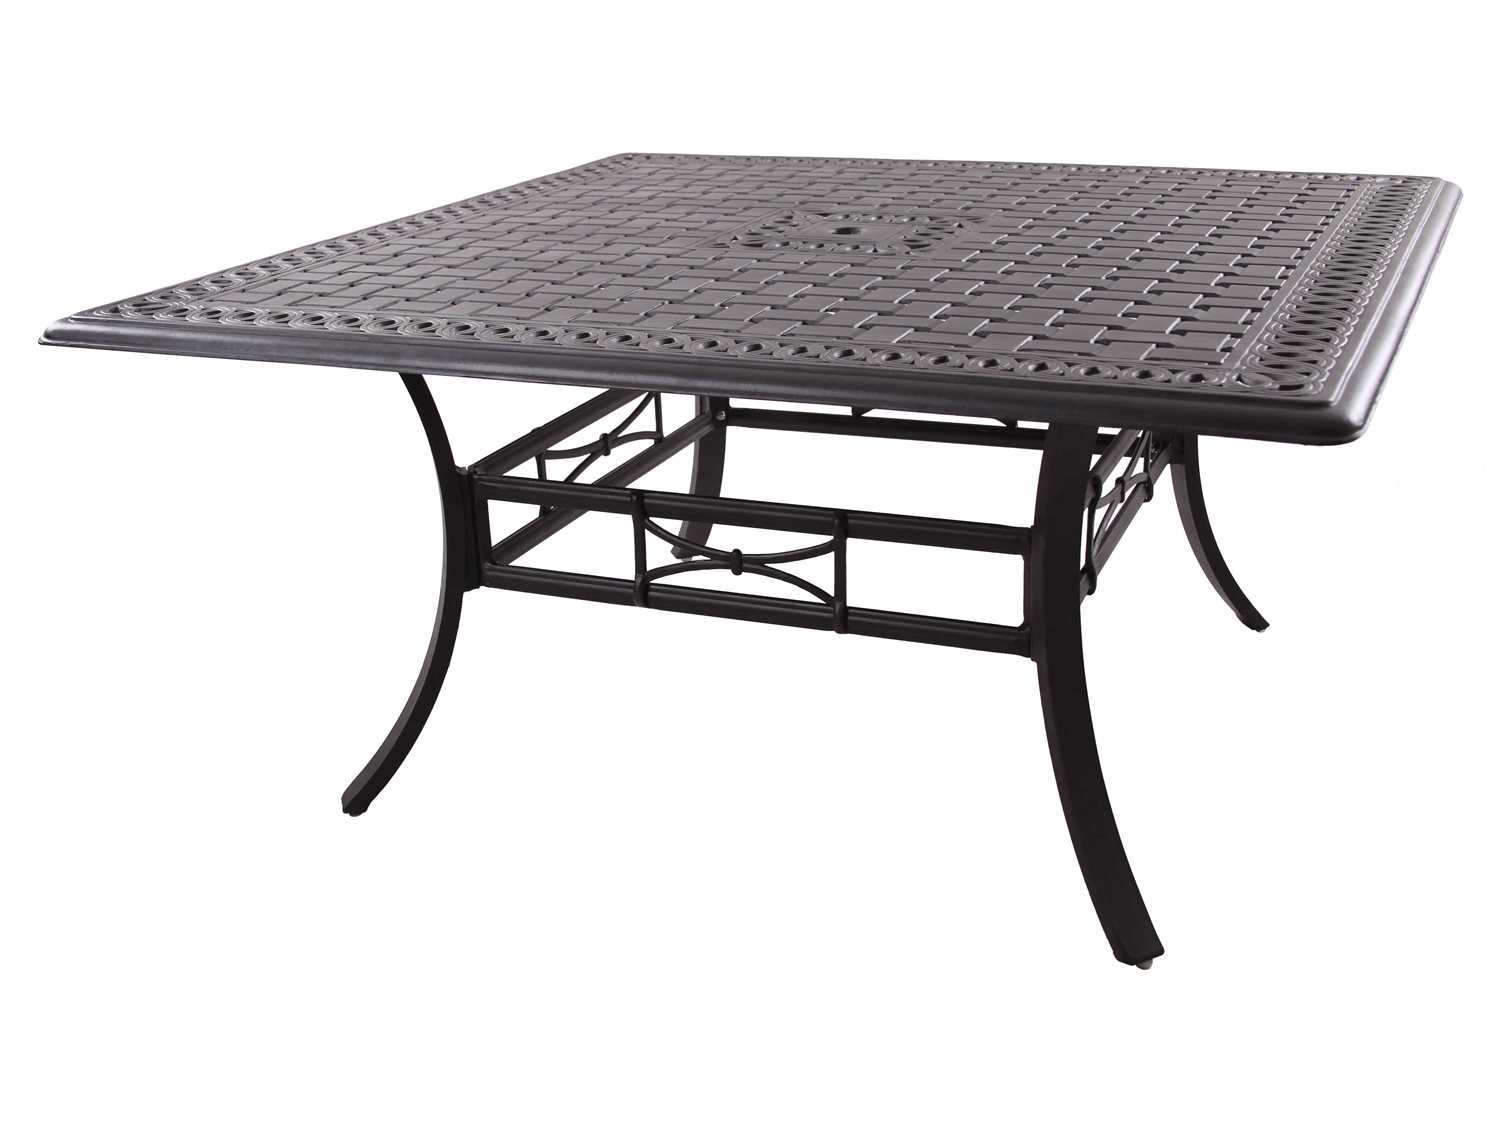 60 square dining table darlee outdoor living series 88 cast aluminum antique 3937